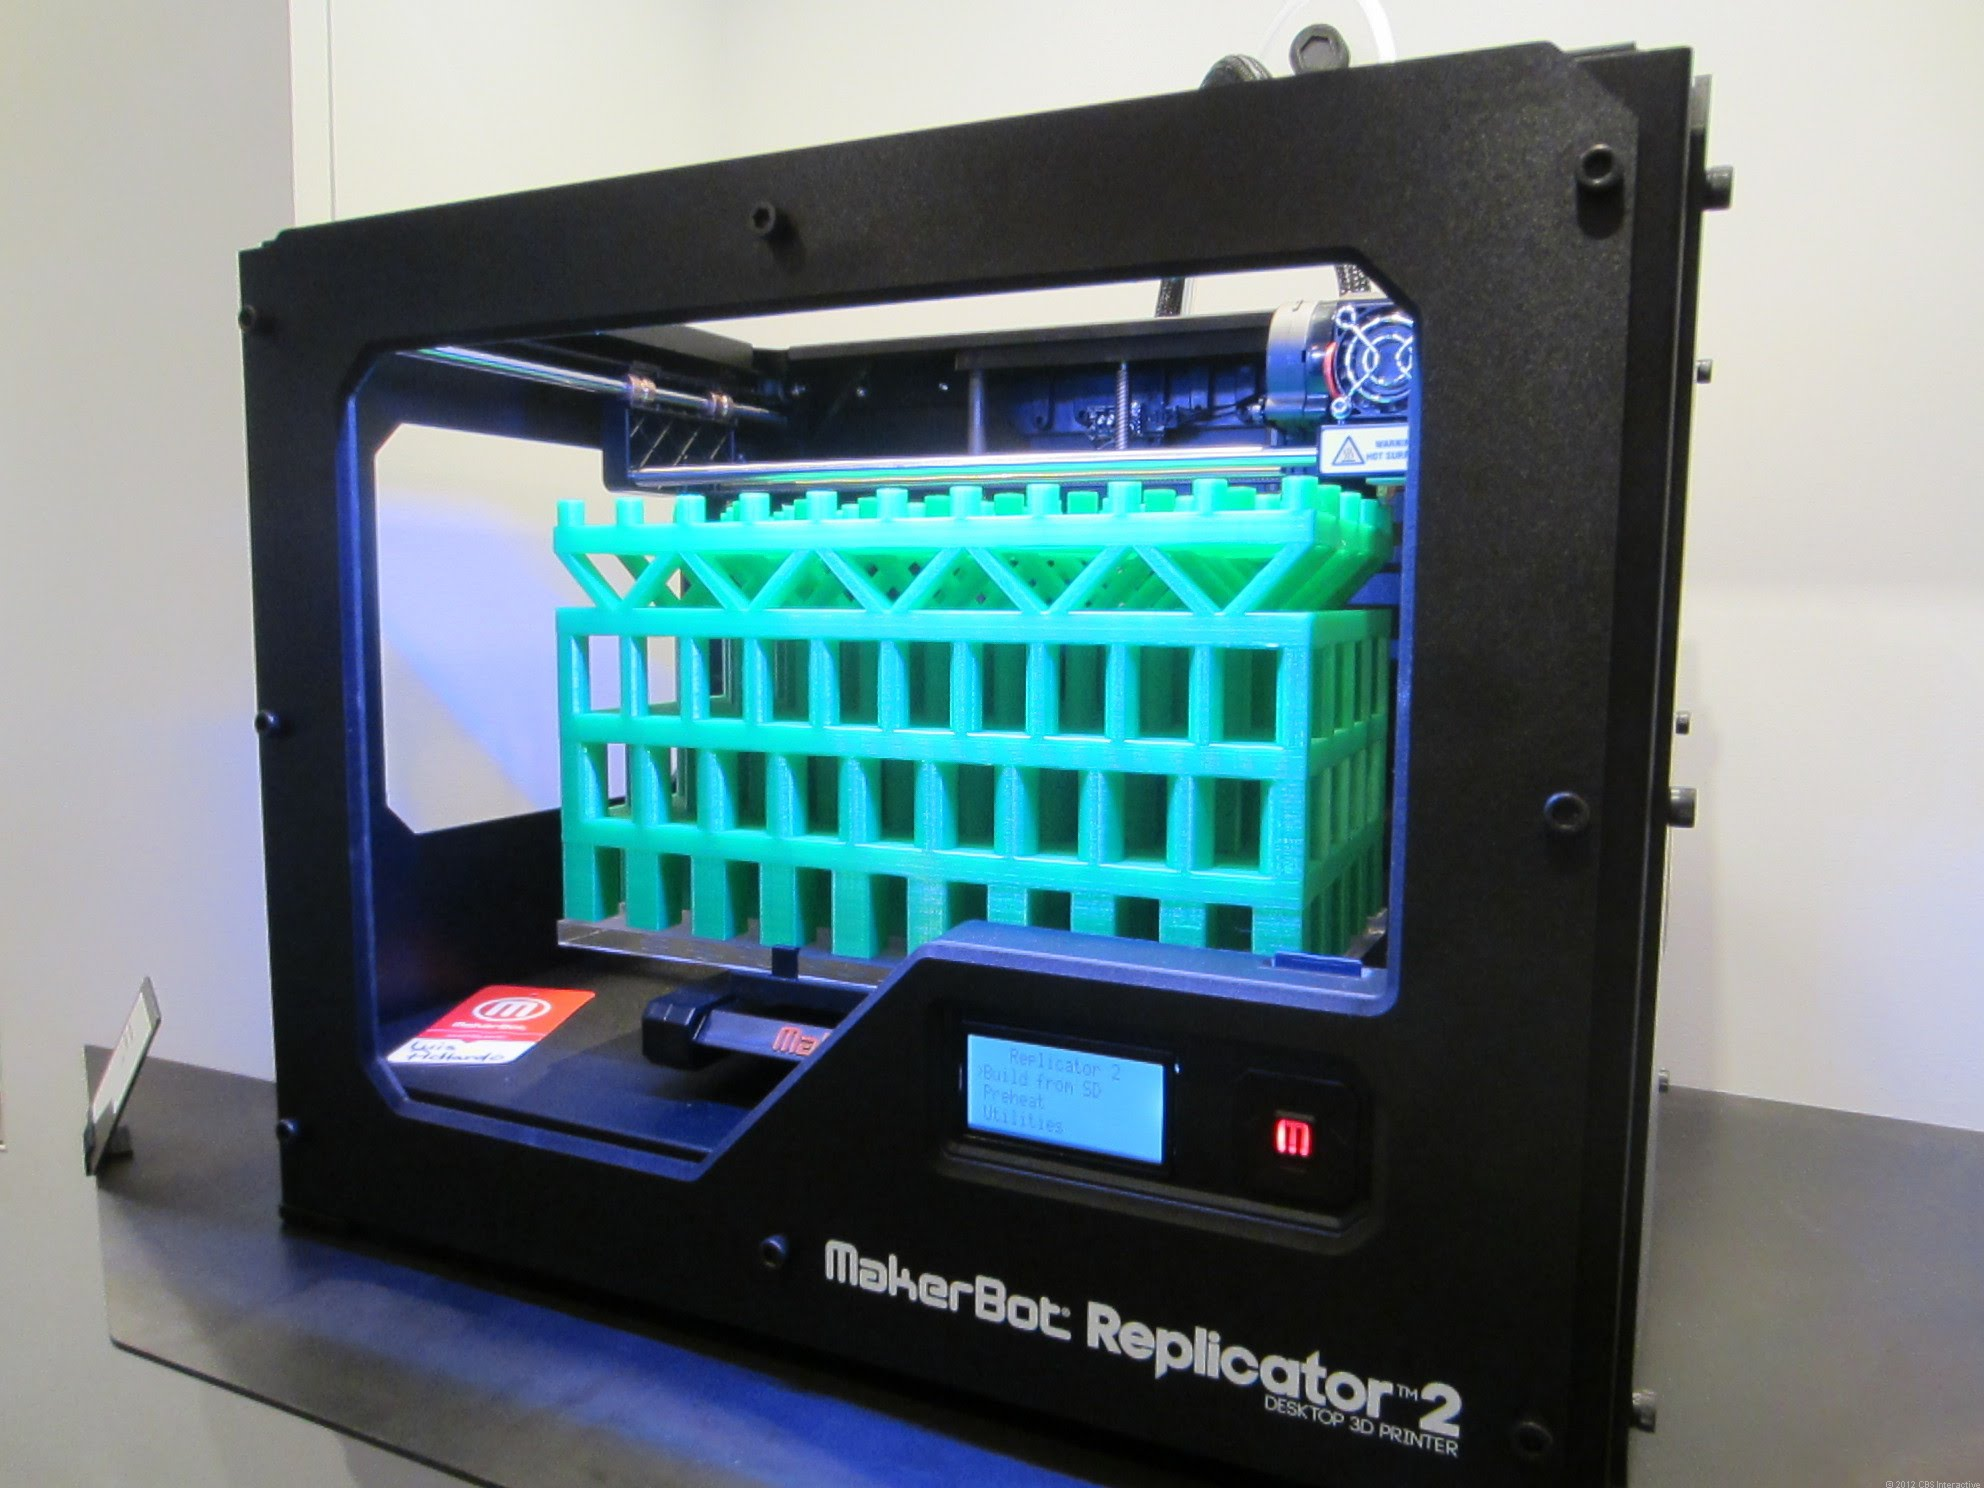 Makerbot 3D Printer for jewelry line and packaging